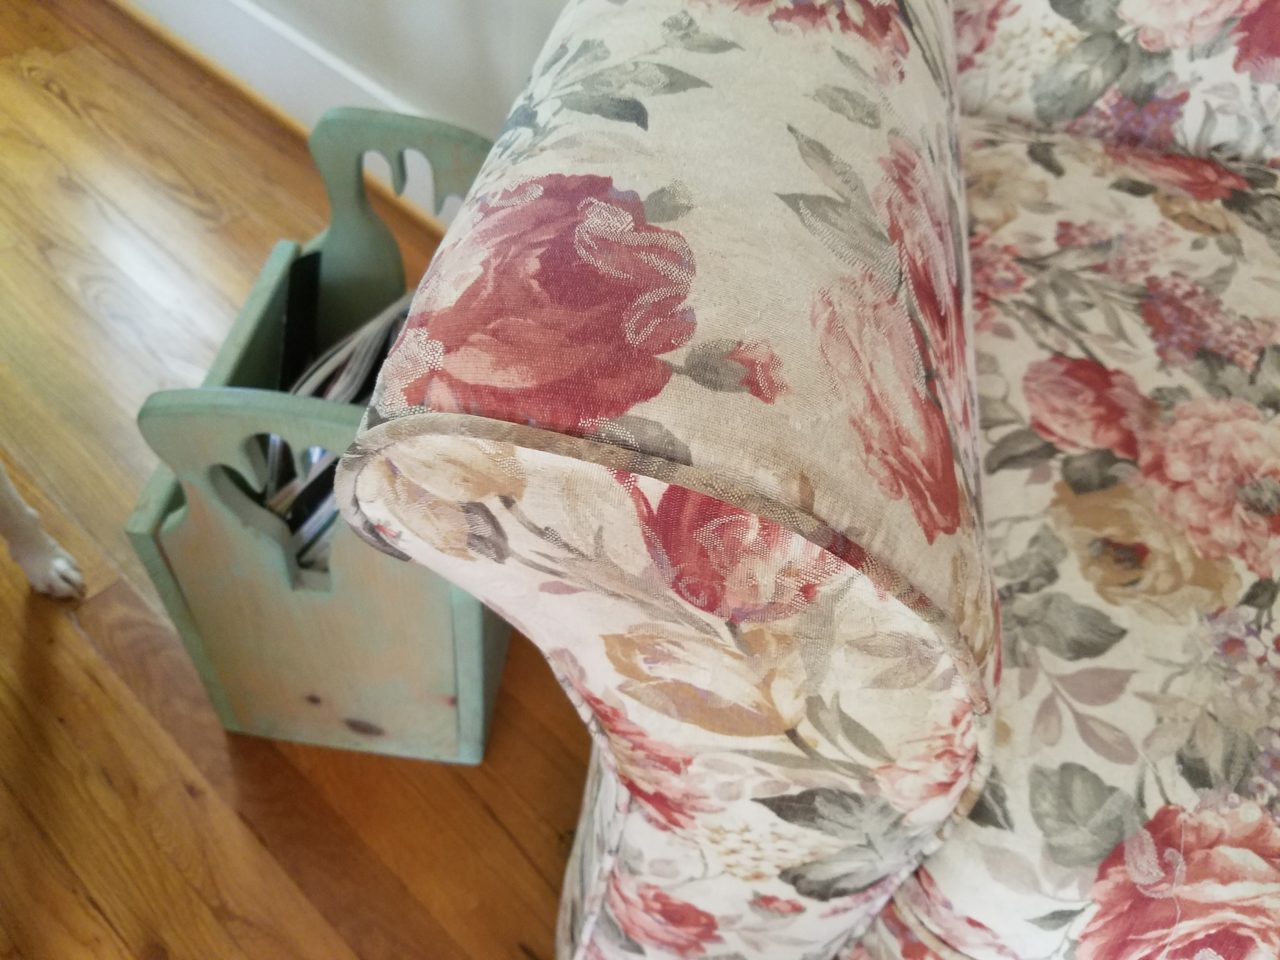 Couch Before & after photos